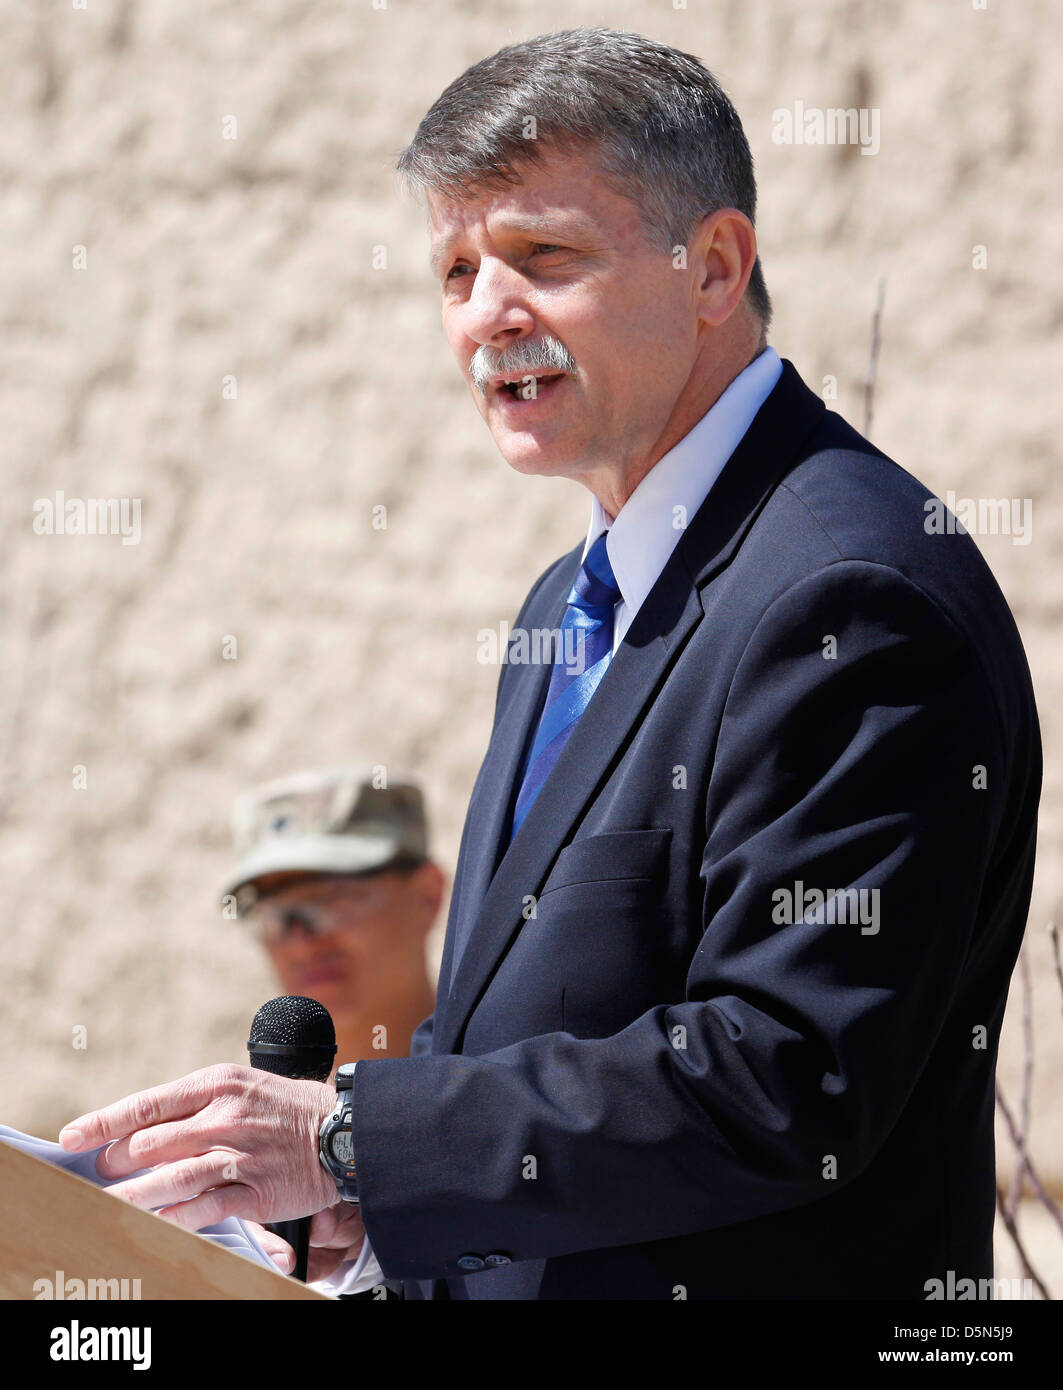 US Ambassador Stephen McFarland speaks at the closing ceremony of Provincial Reconstruction Team Gardez April 3, - Stock Image